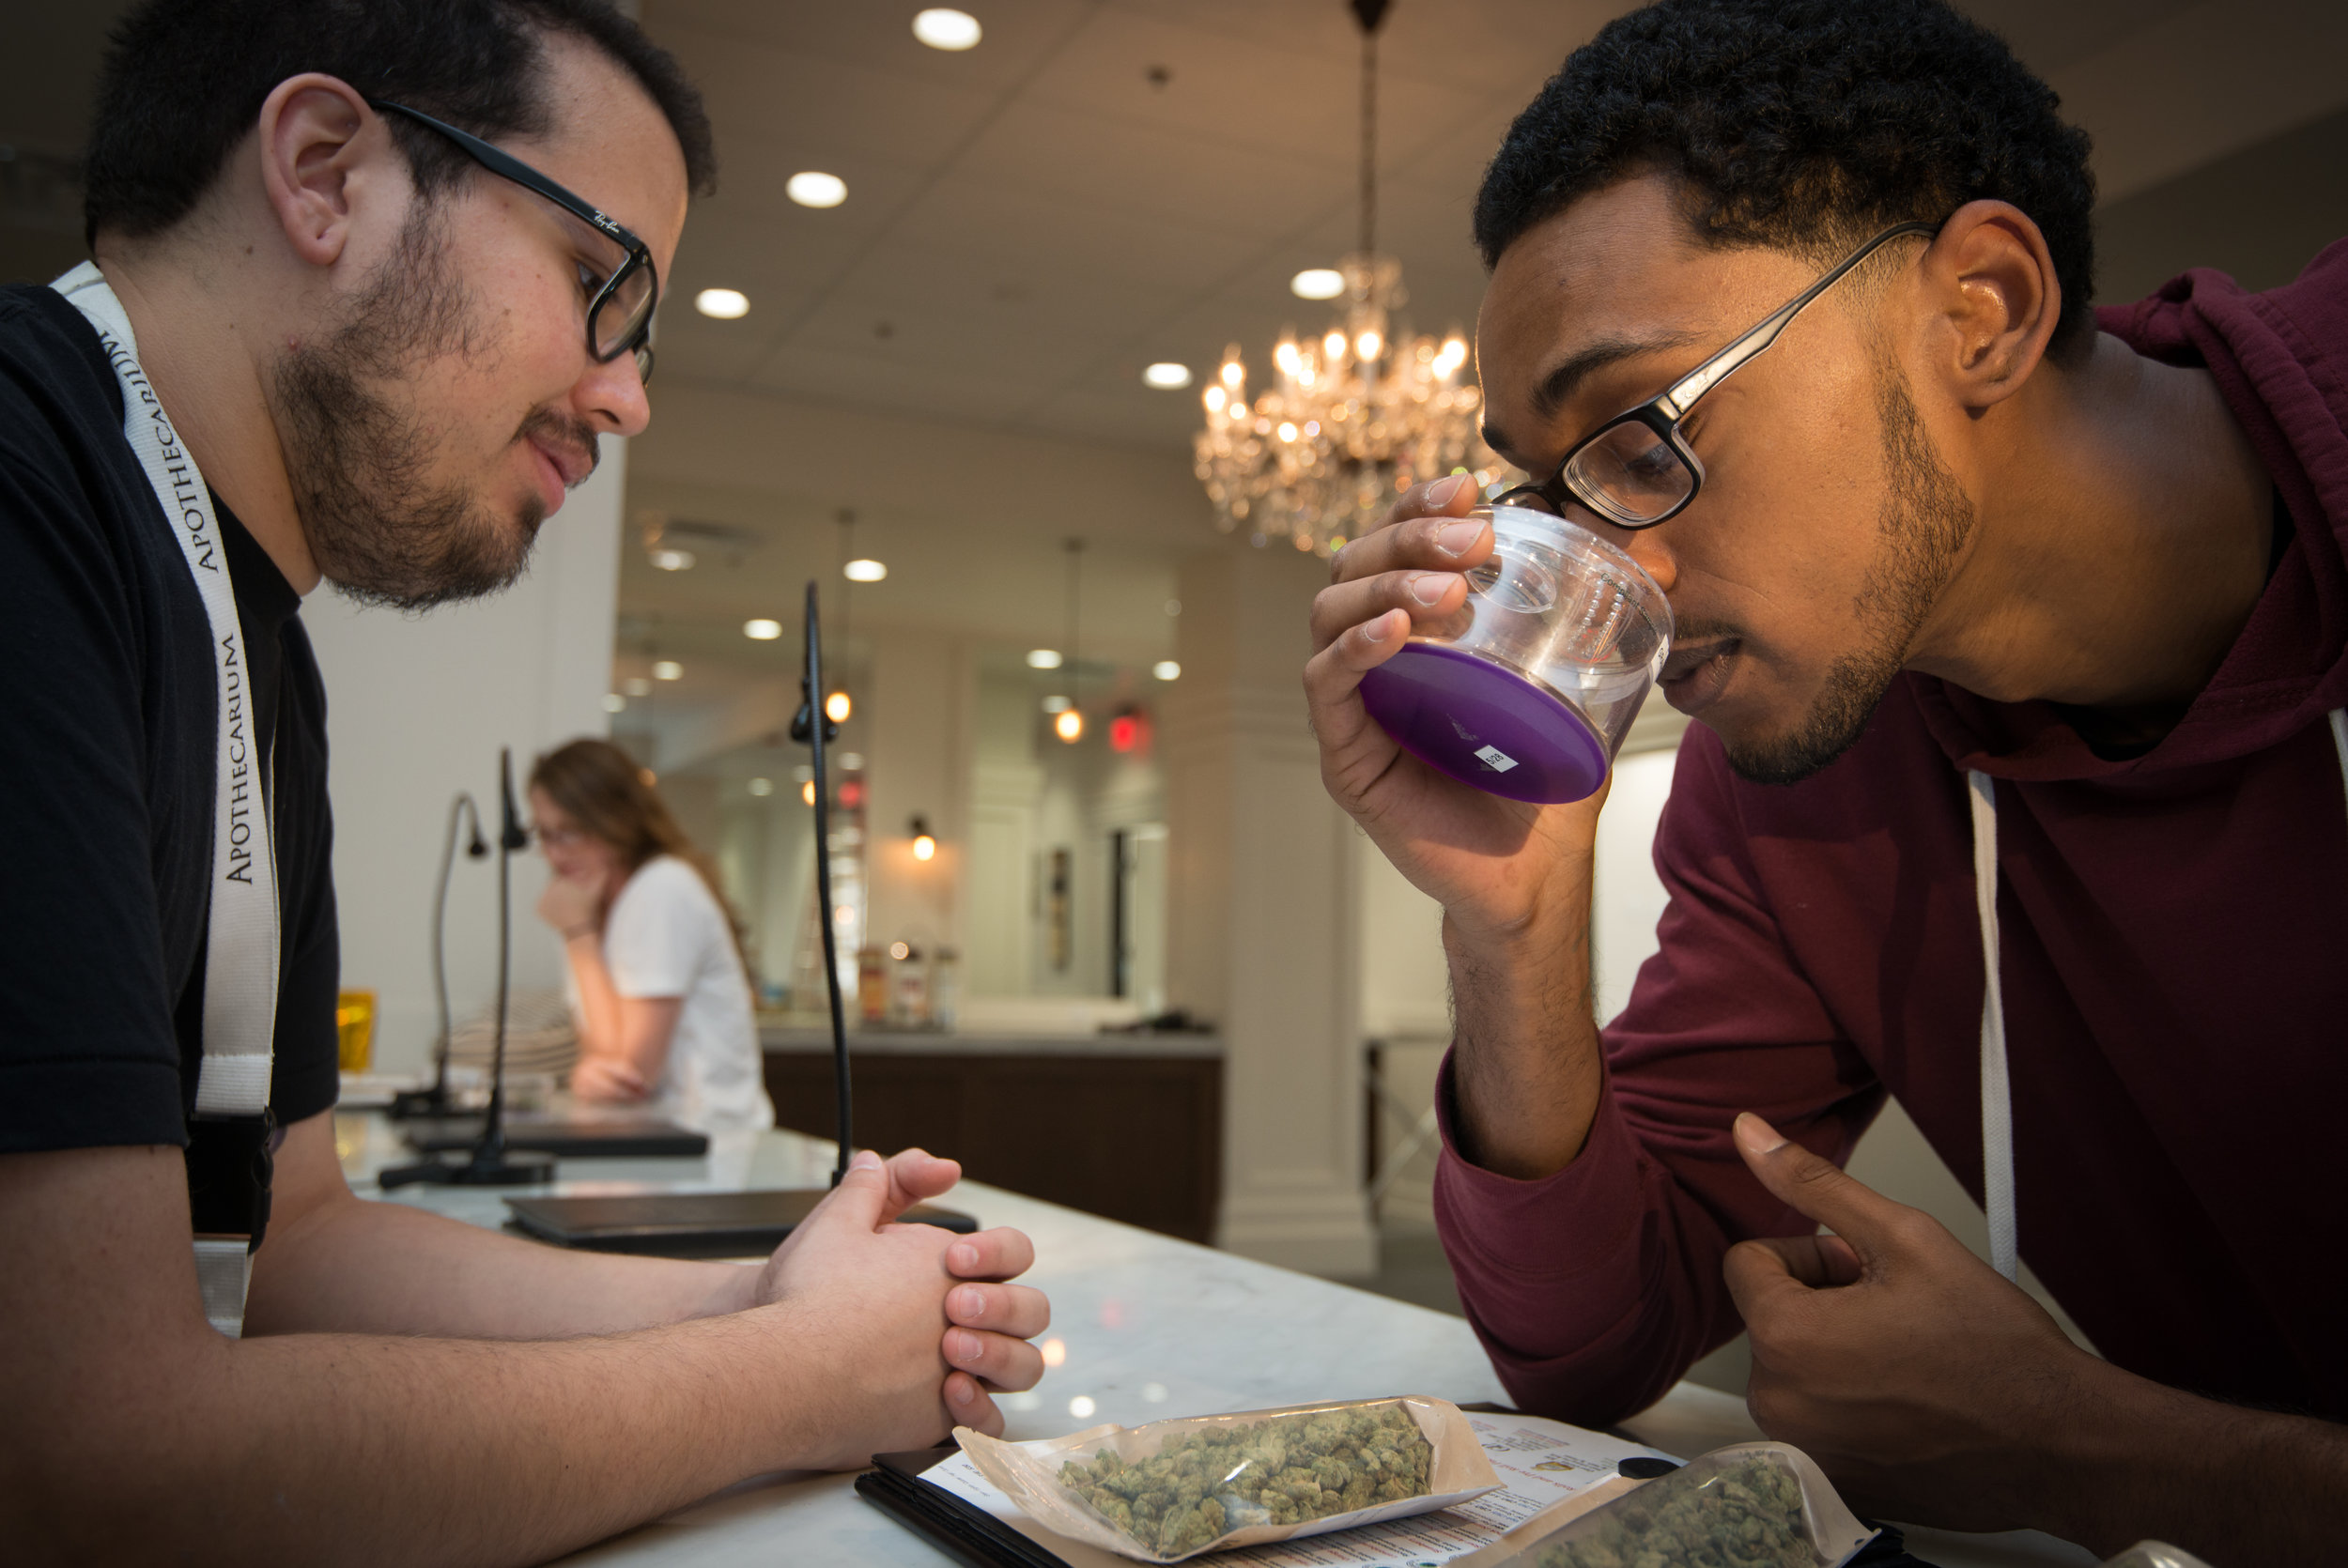 Staff at The Apothecarium Dispensary help patients find the right medicine for their needs.